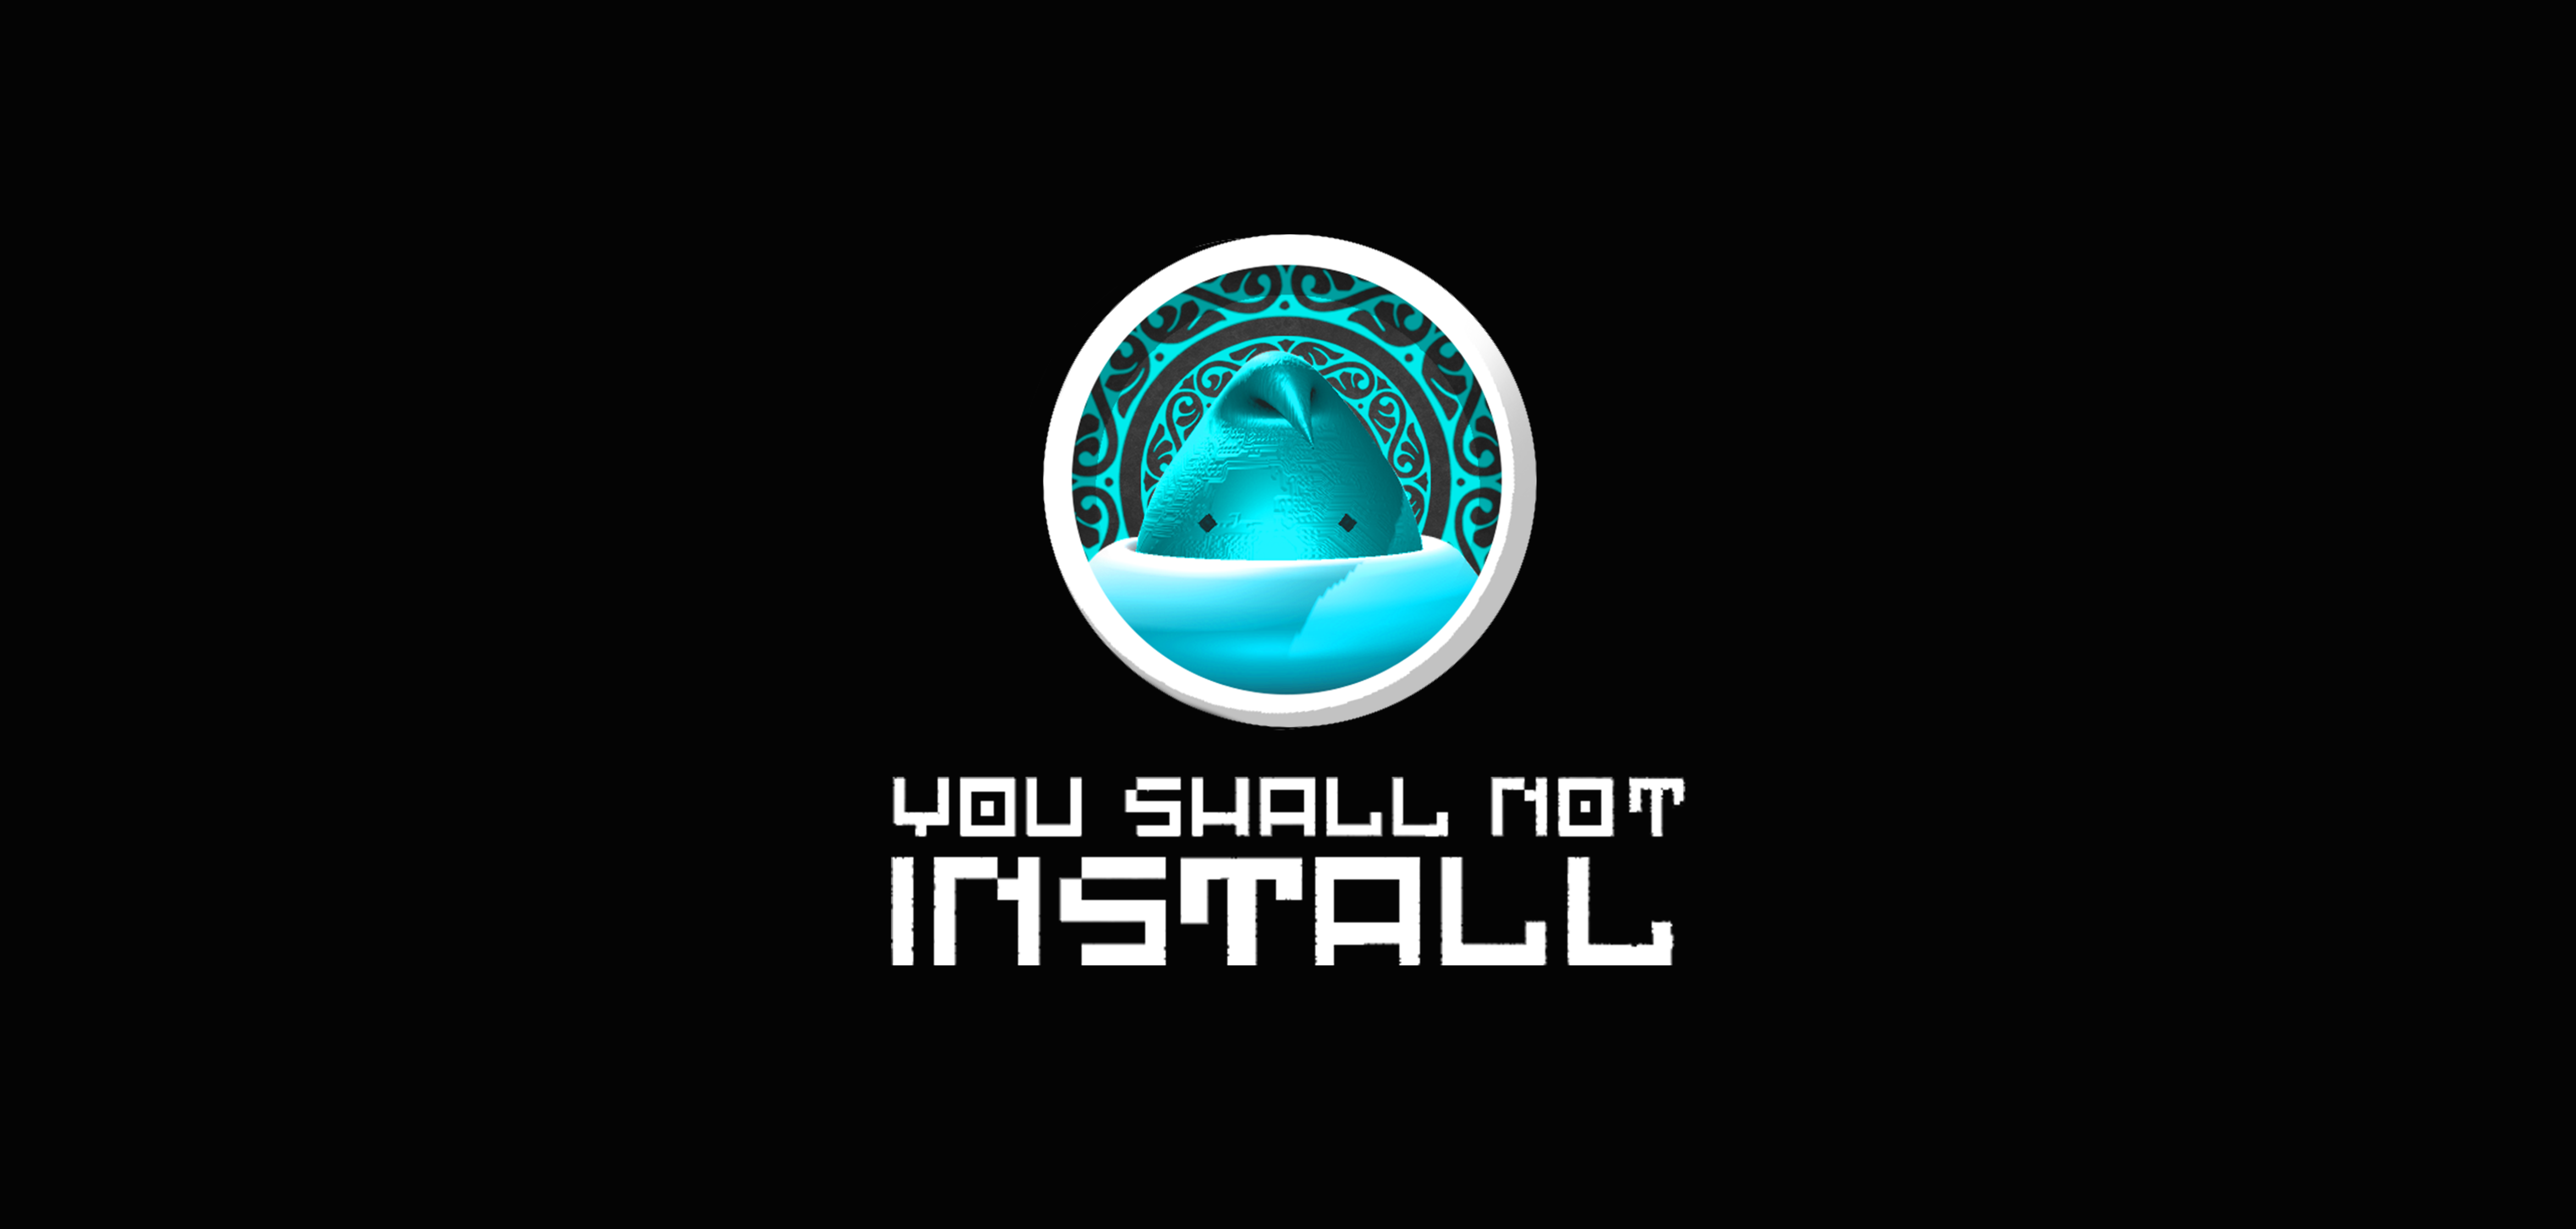 You Shall Not Install